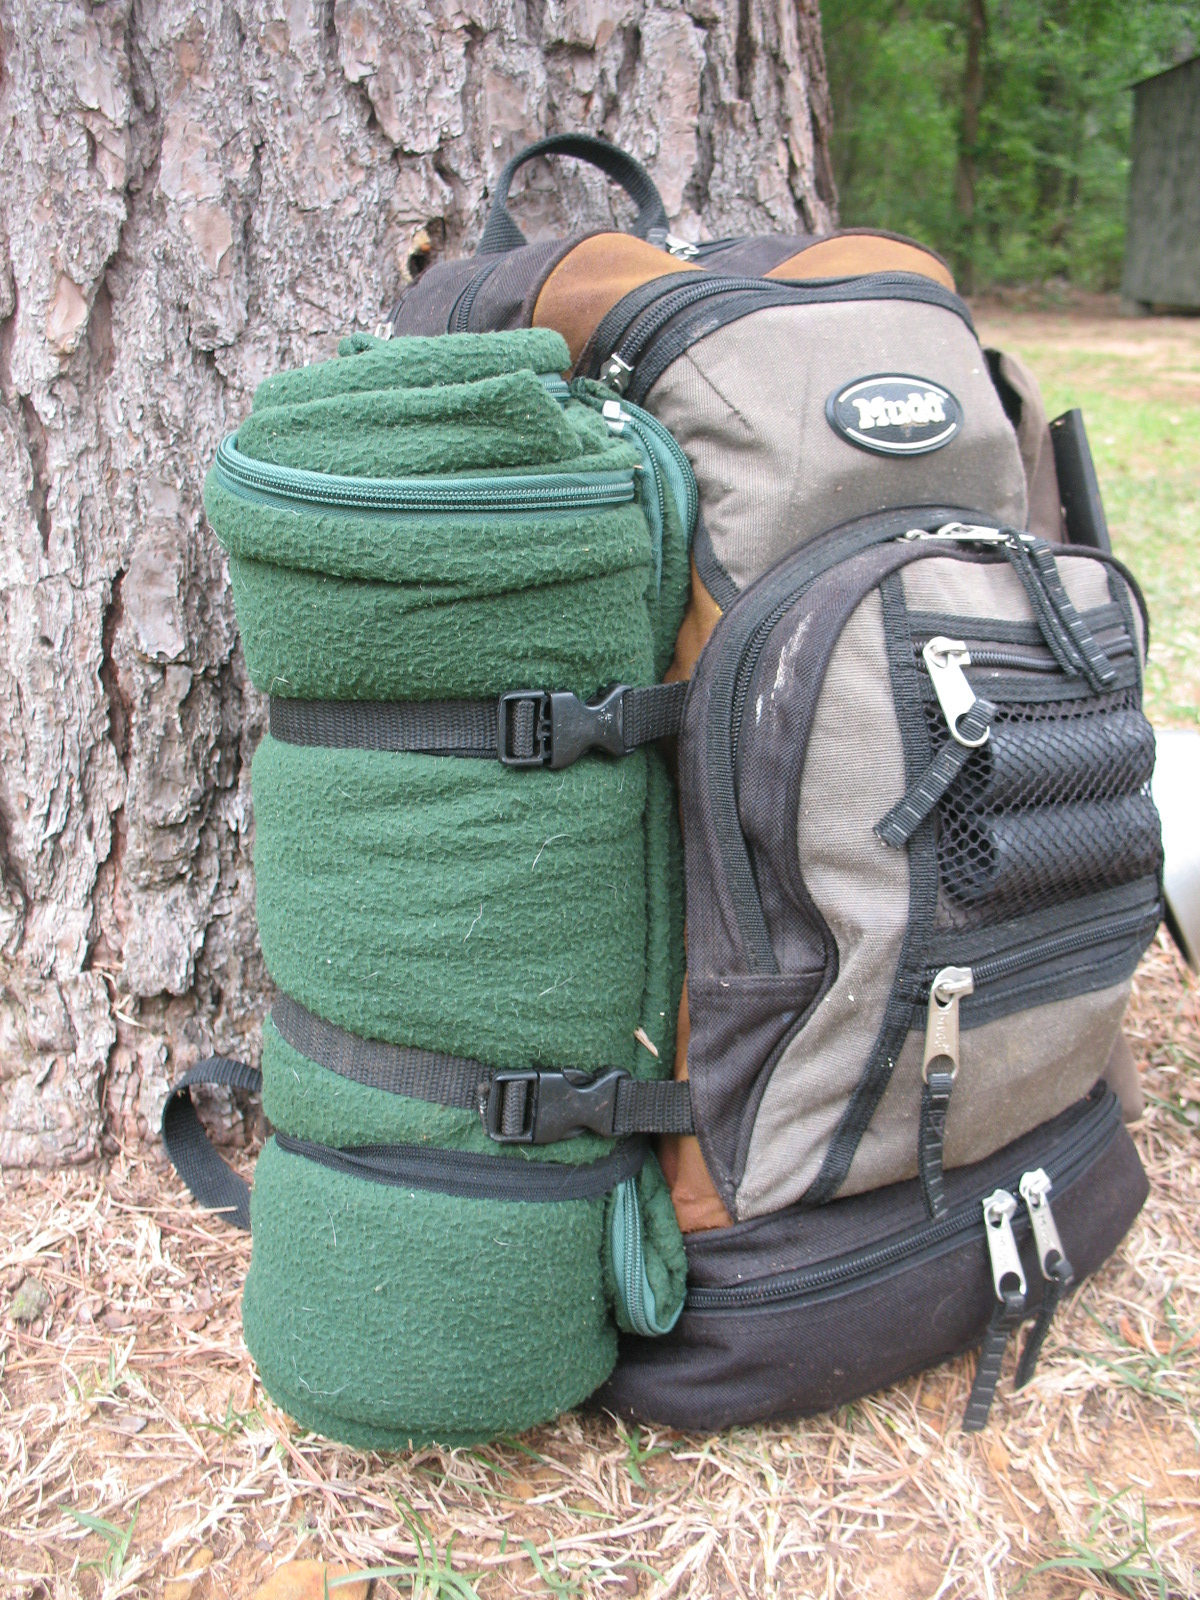 My Ultimate Bug Out Gear Part 2 Sensible Survival